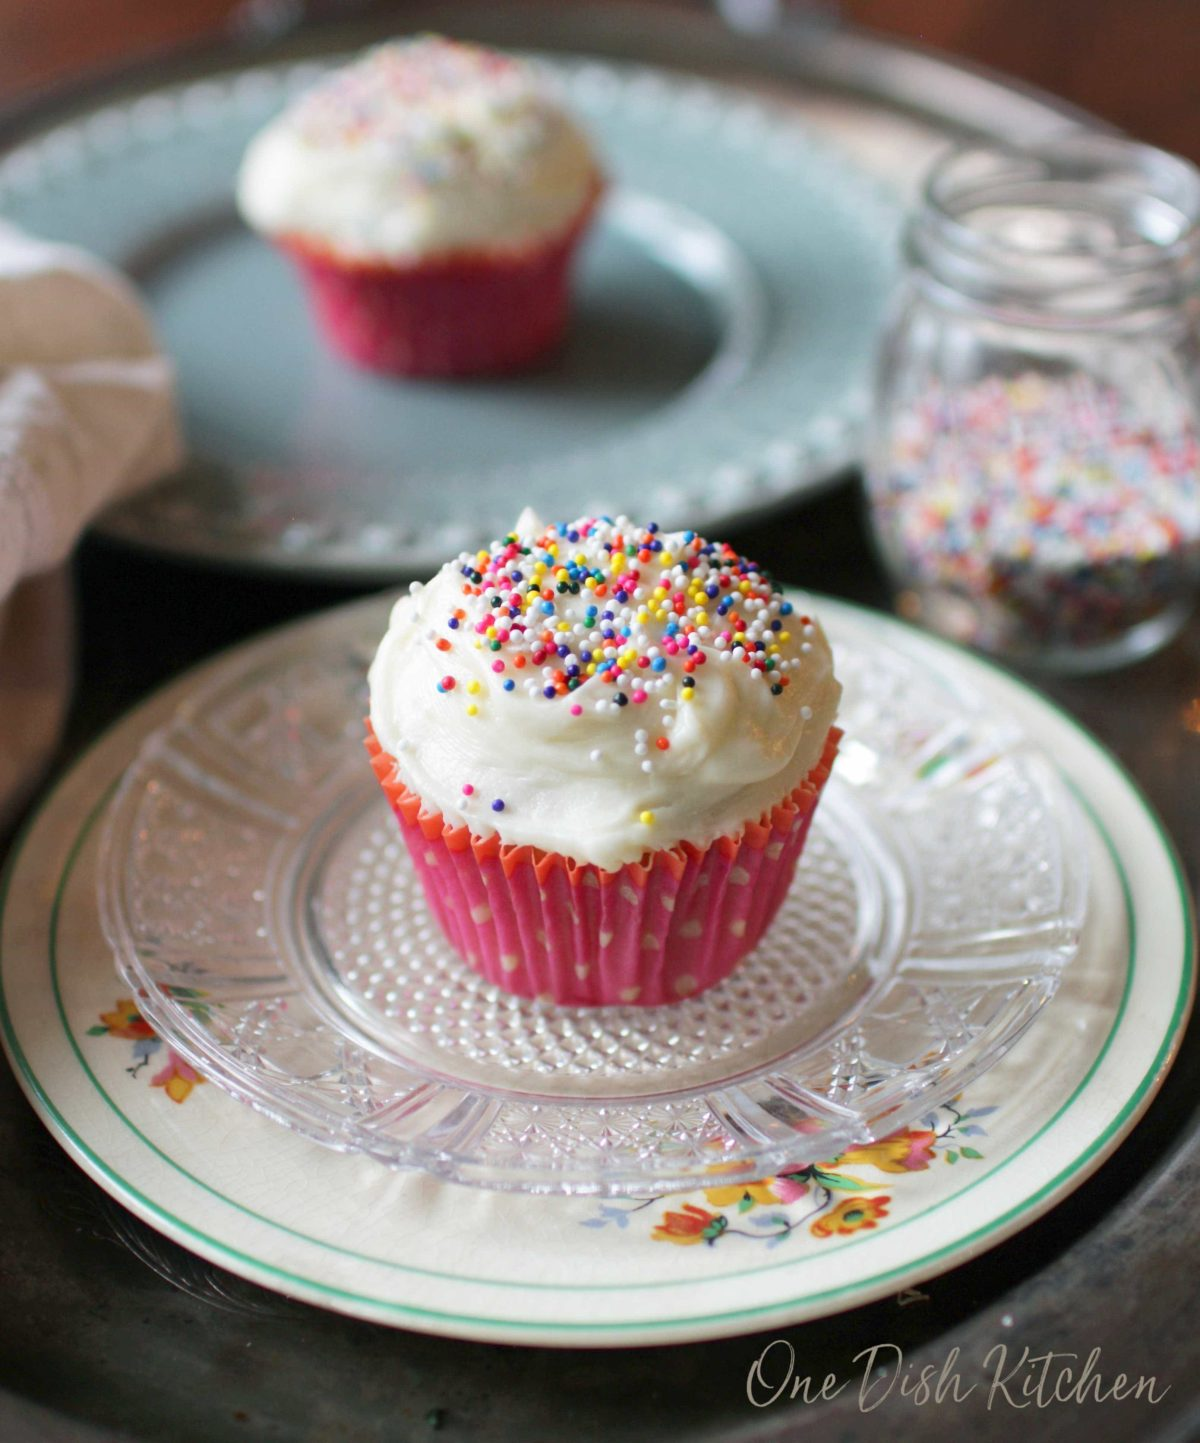 A cupcake with vanilla frosting and rainbow sprinkles on a plate next to another cupcake in the background.